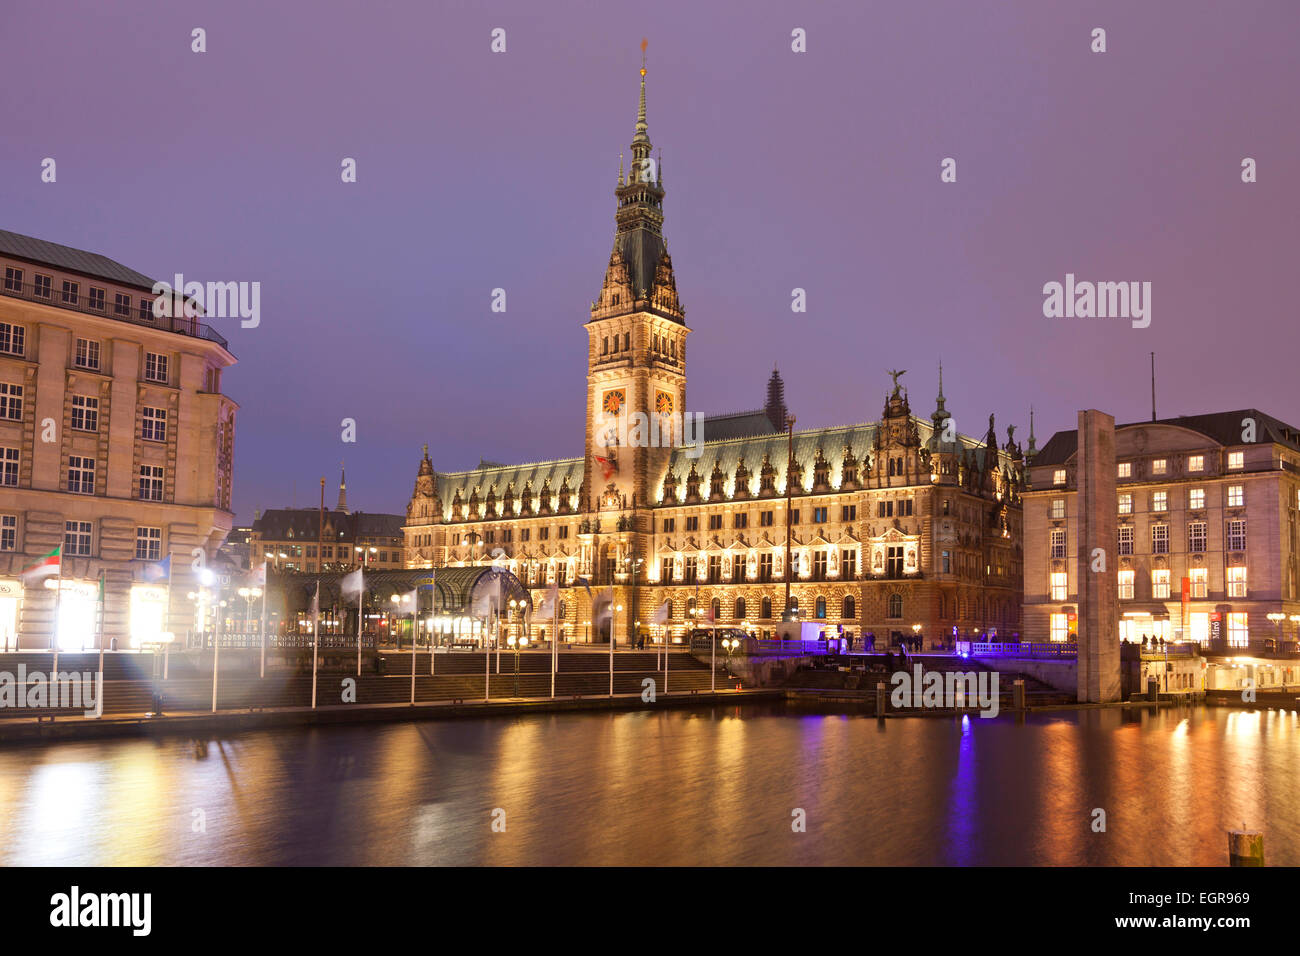 City Hall and Kleine Alster canal, Hamburg, Germany, Europe - Stock Image